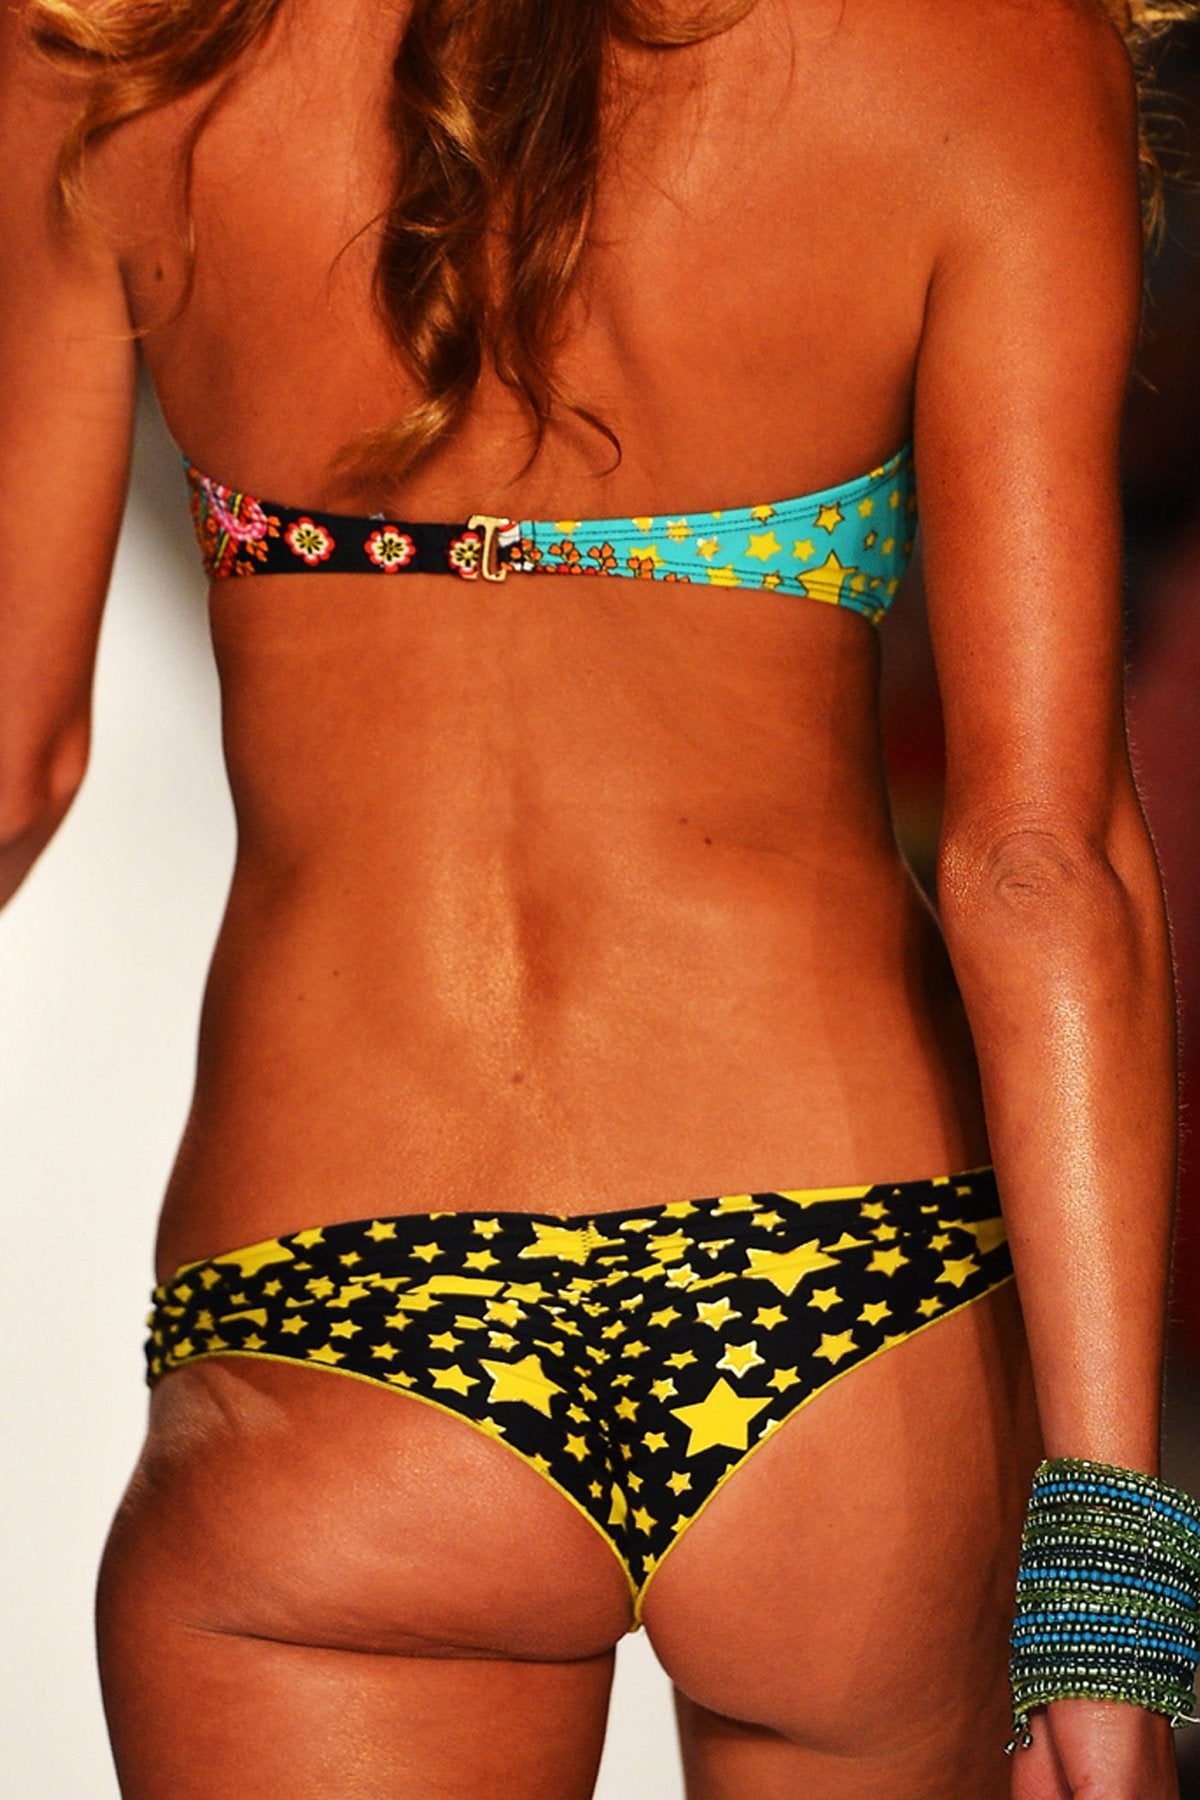 DESFILE DE ESTRELLAS - Underwire Push Up Bandeau Top & Multi Strap Brazilian Ruched Back Bottom • Multicolor